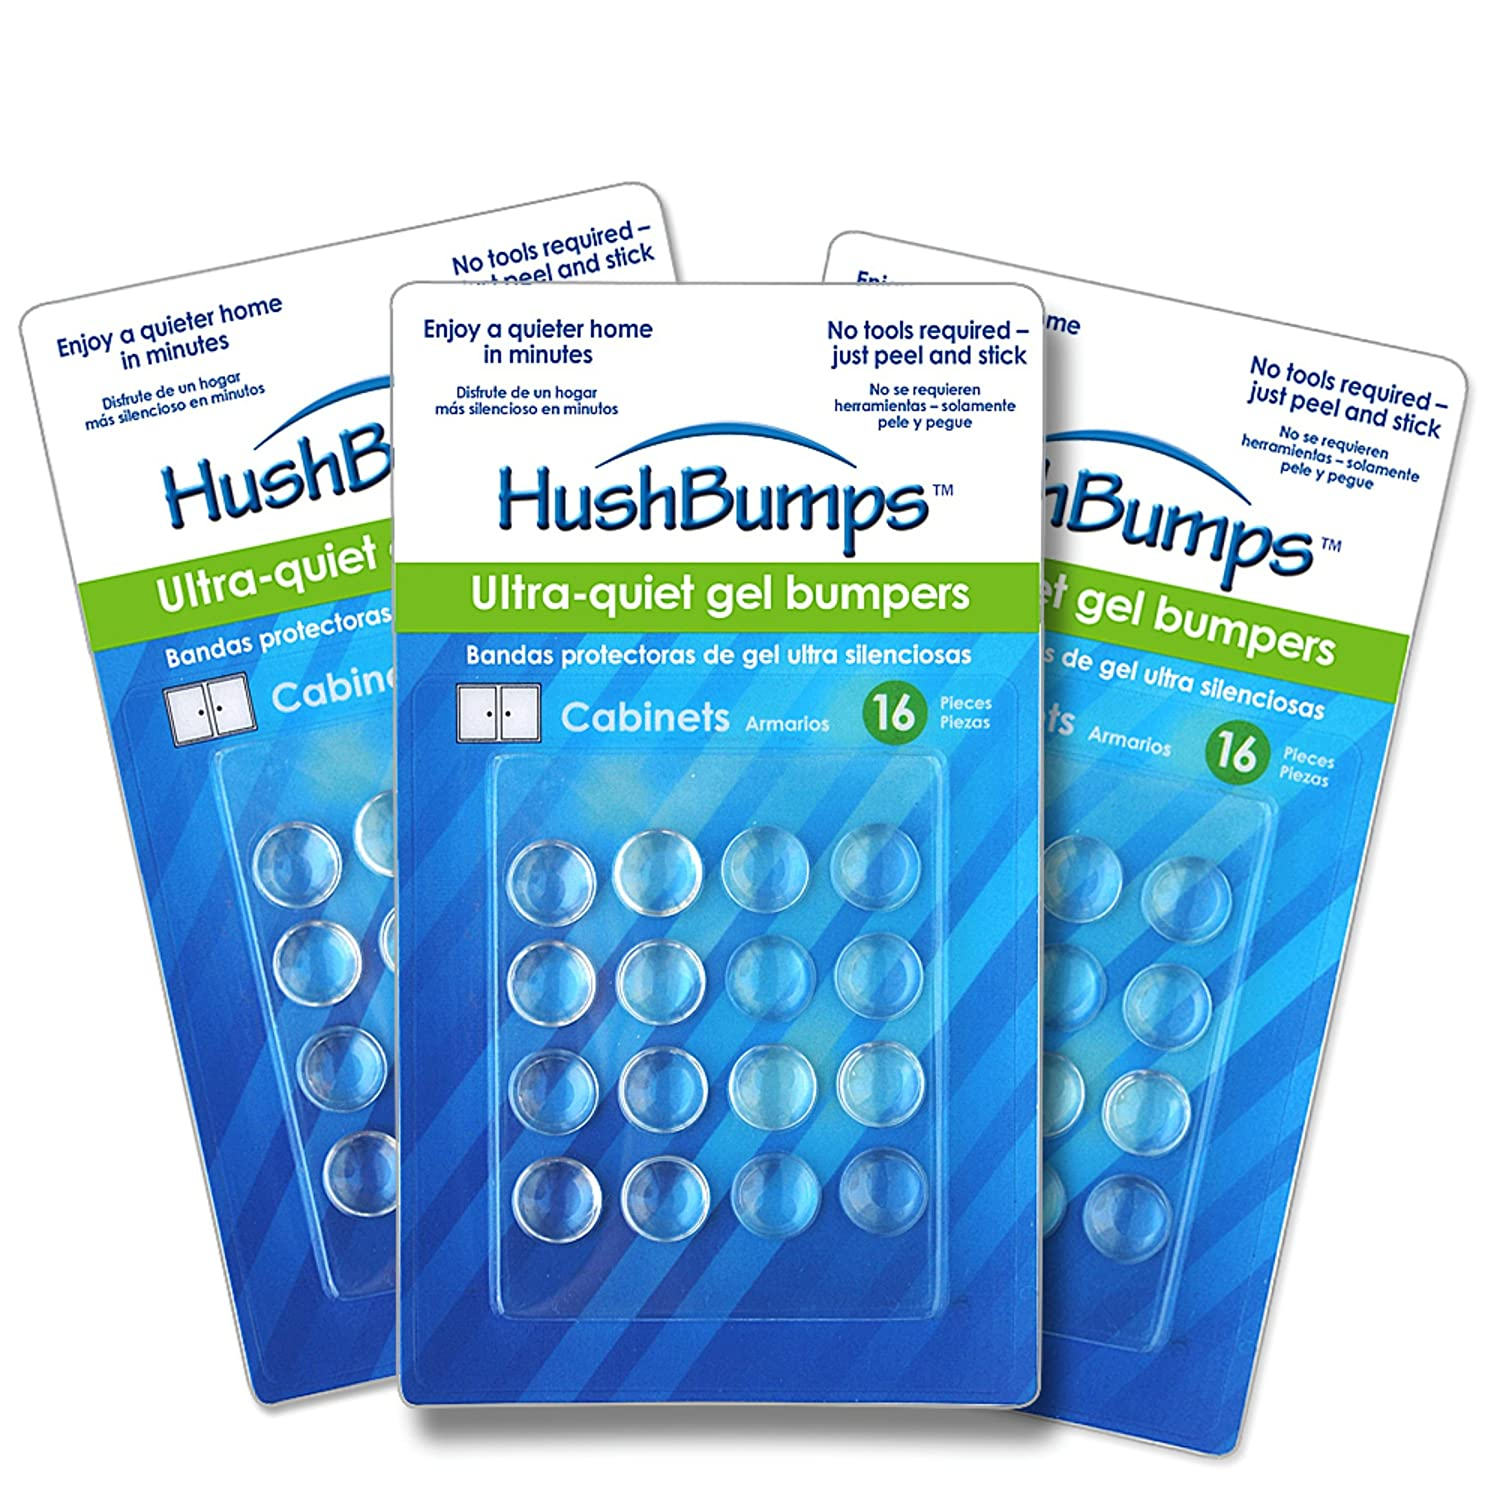 HushBumps Ultra-Quiet GEL Bumpers 3-PACK. Perfect Cabinets & Drawers ...